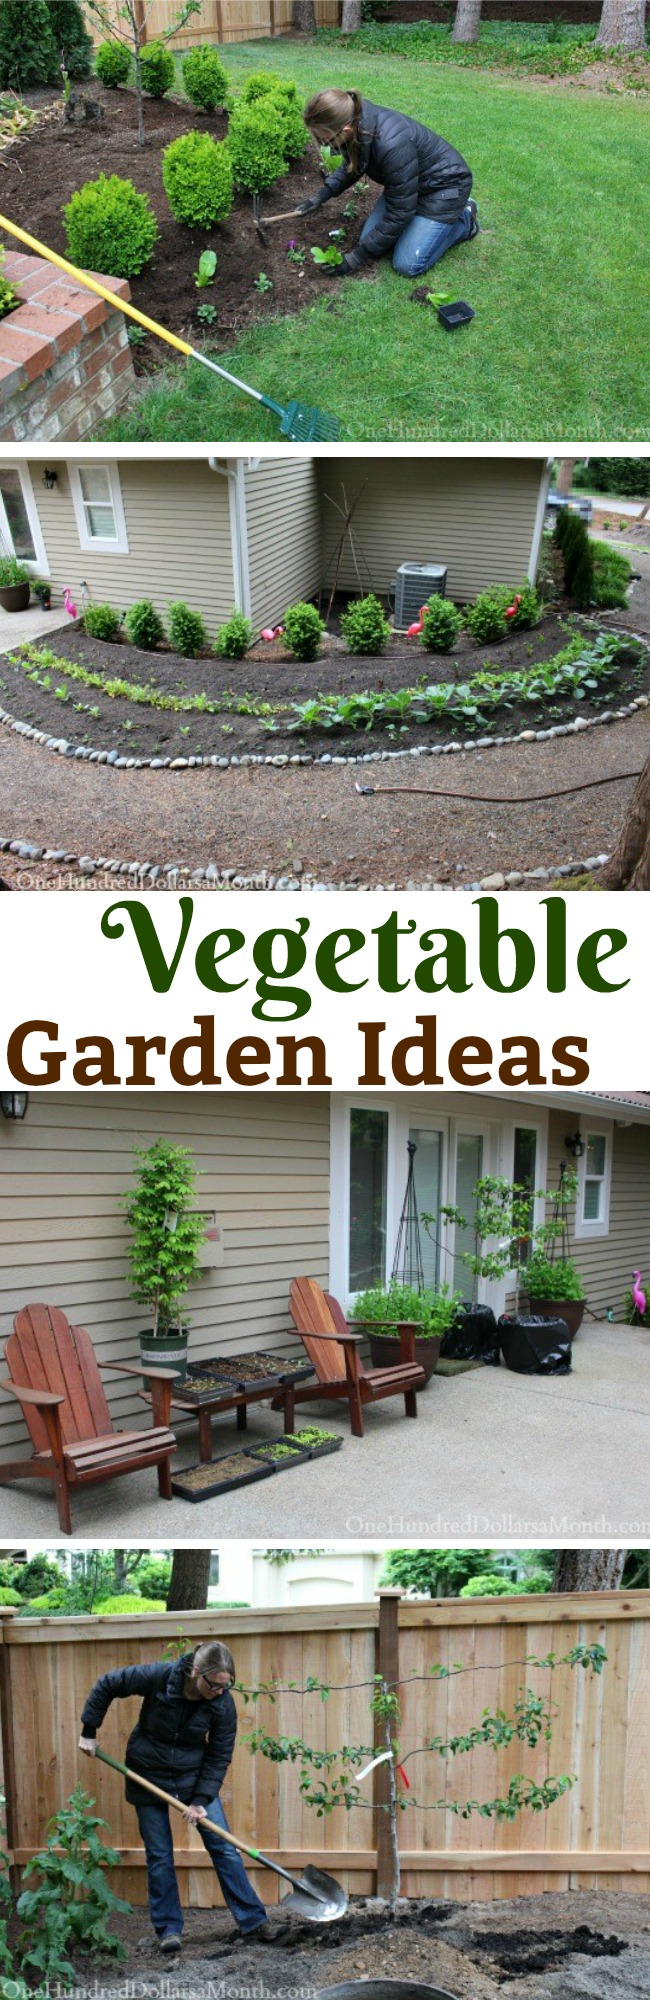 Mavis Butterfield | Backyard Garden Plot Pictures 5/17/15